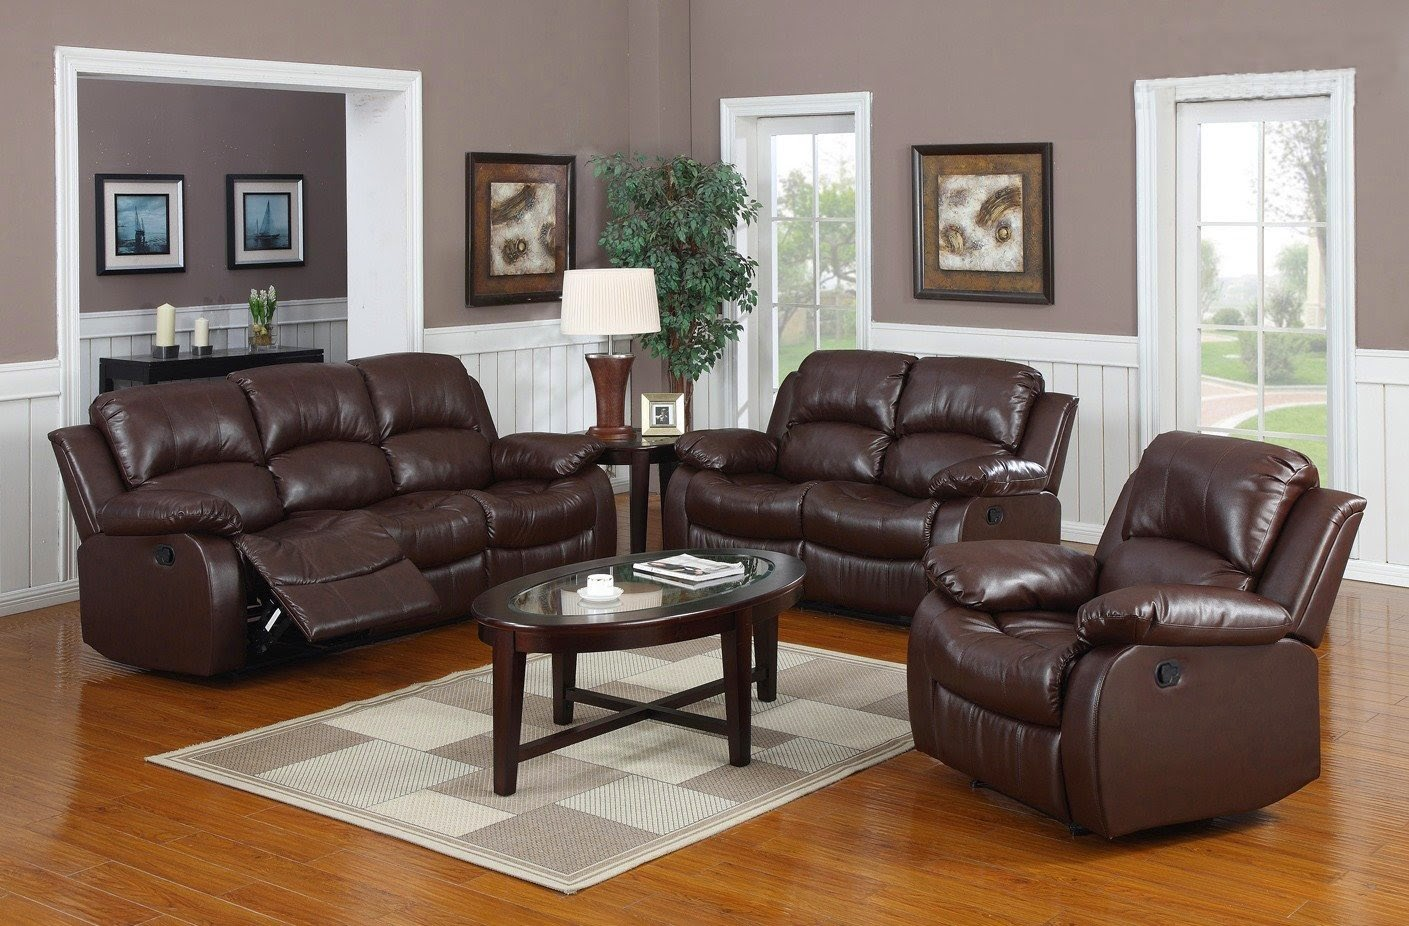 Perfect Huntington 3 Pc Bonded Leather Sofa U0026 Loveseat U0026 Chair Set With 5 Recliners